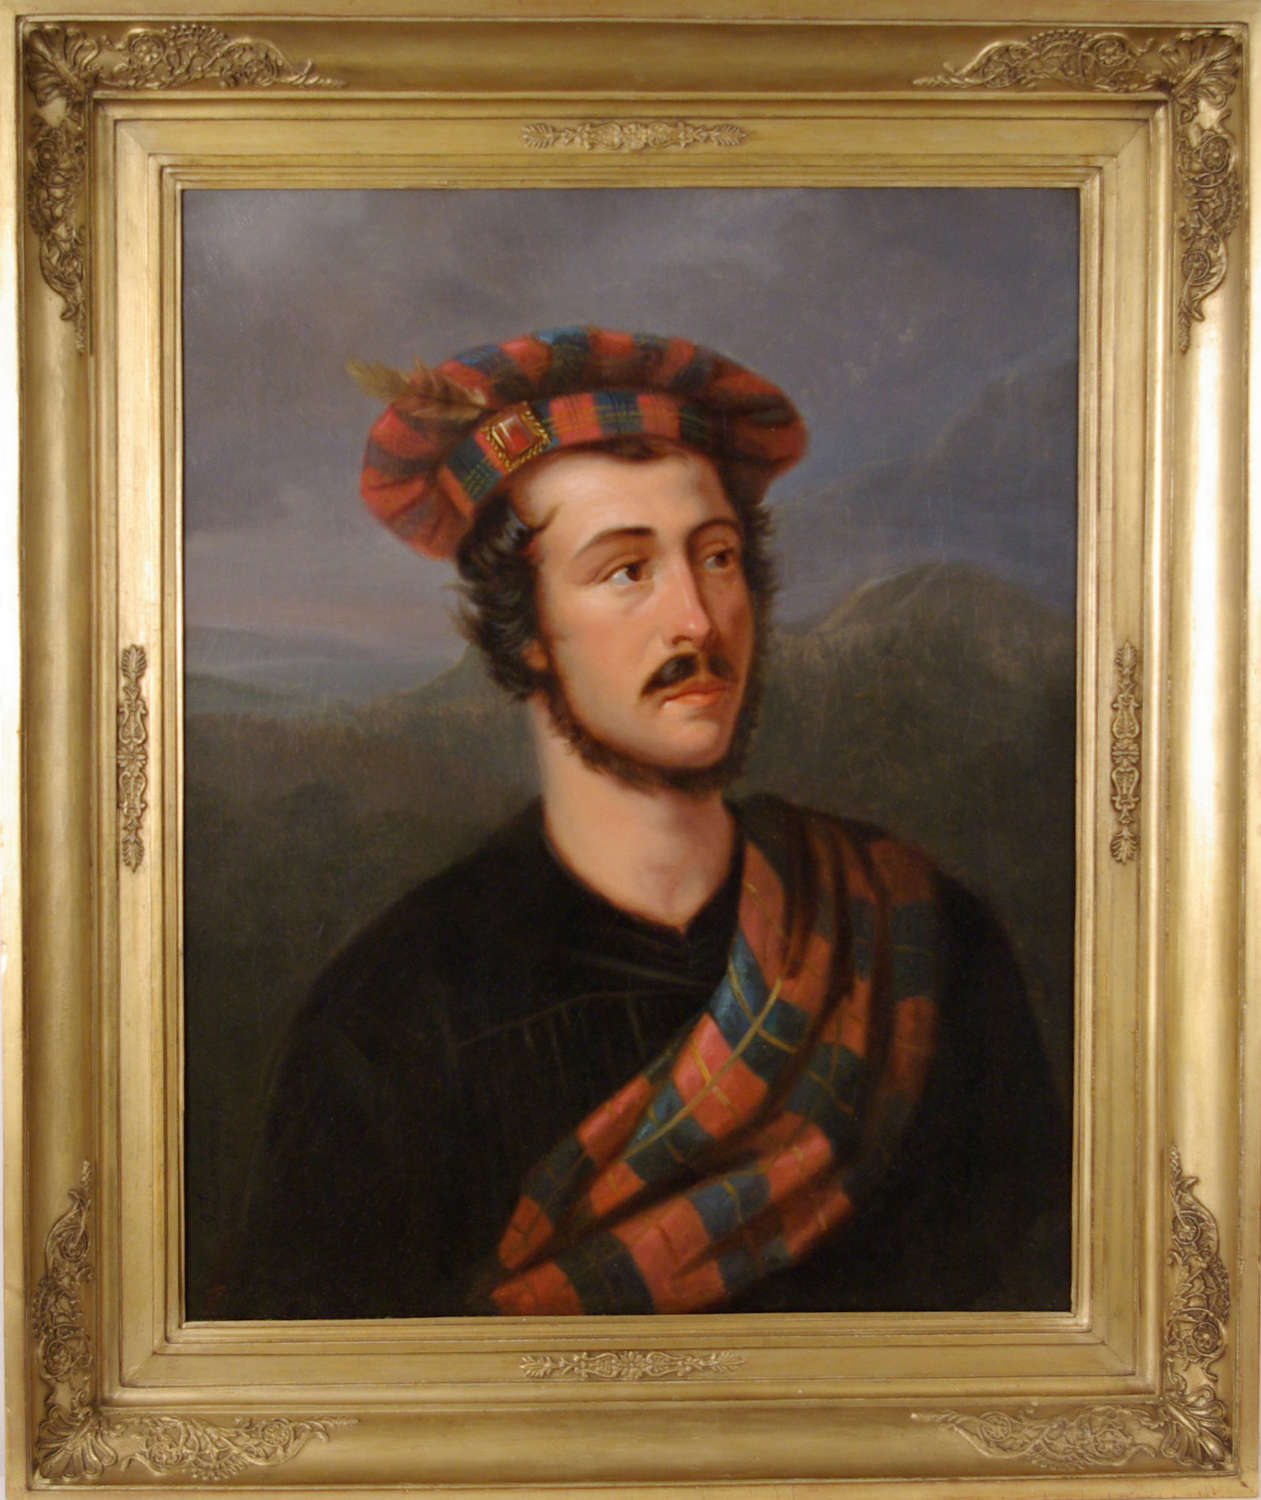 PORTRAIT OF A YOUNG MAN IN HIGHLAND LANDSCAPE ~J. LAWRENCE